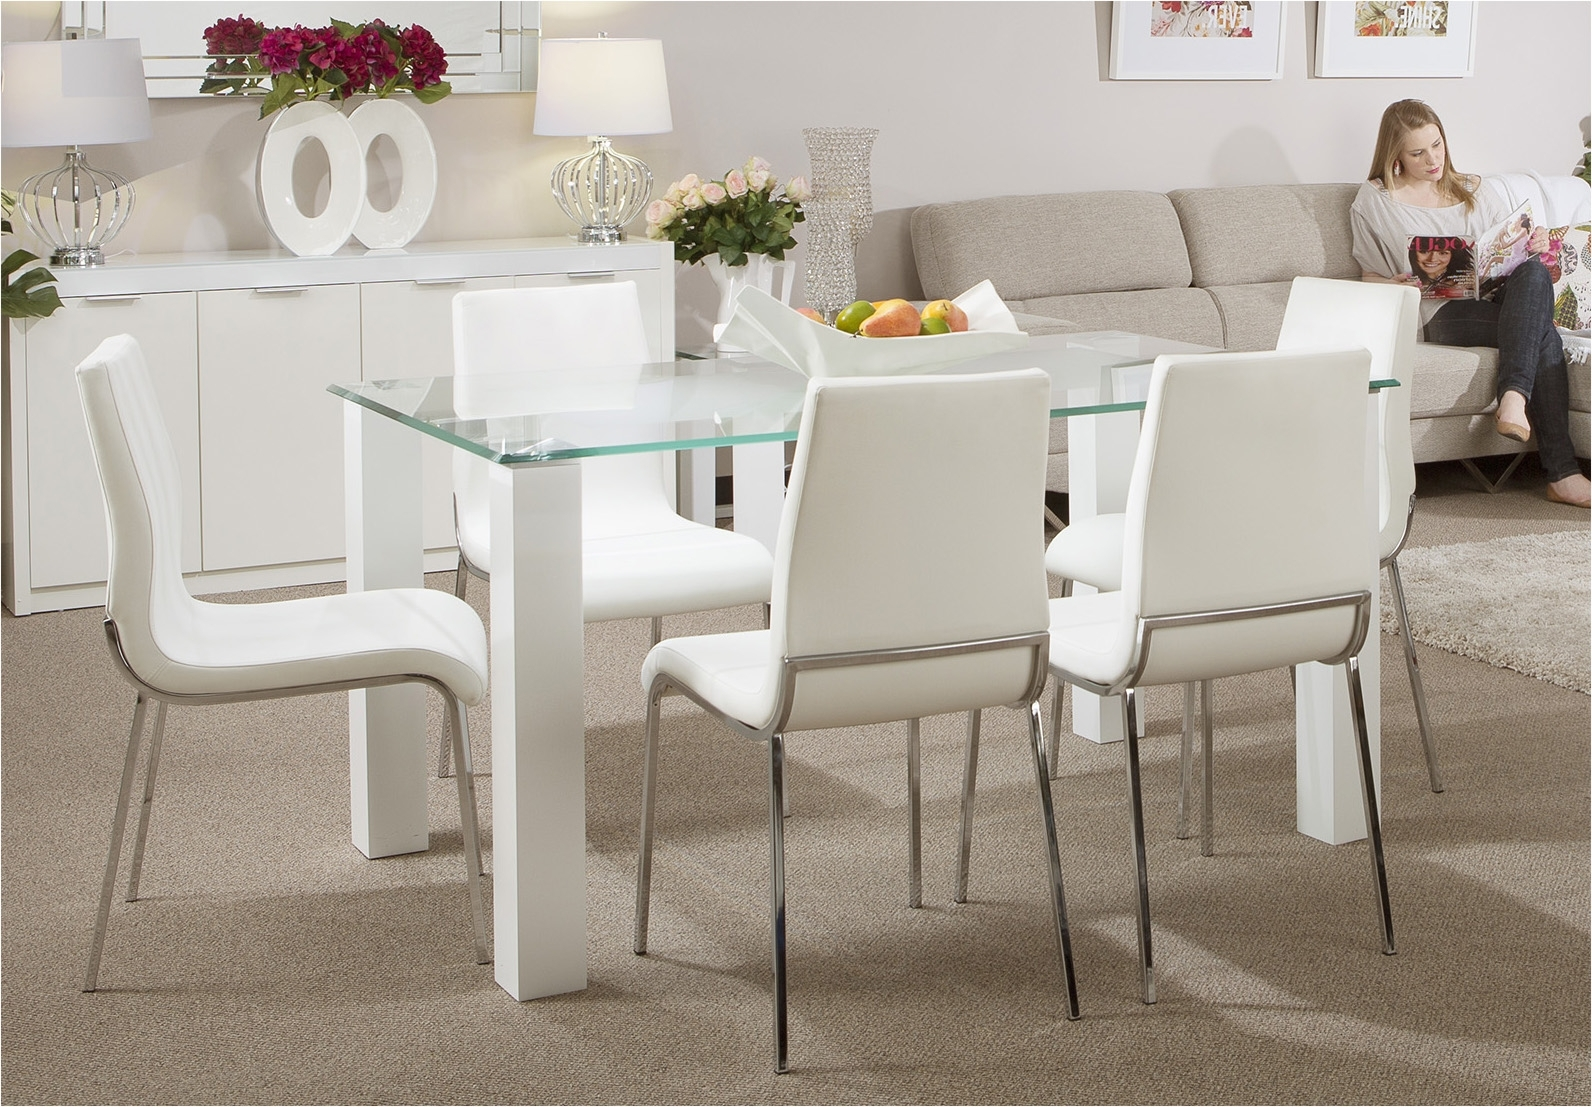 Modern Dining Suites Pertaining To Most Up To Date Dining: Modern Dining Suites (View 11 of 25)